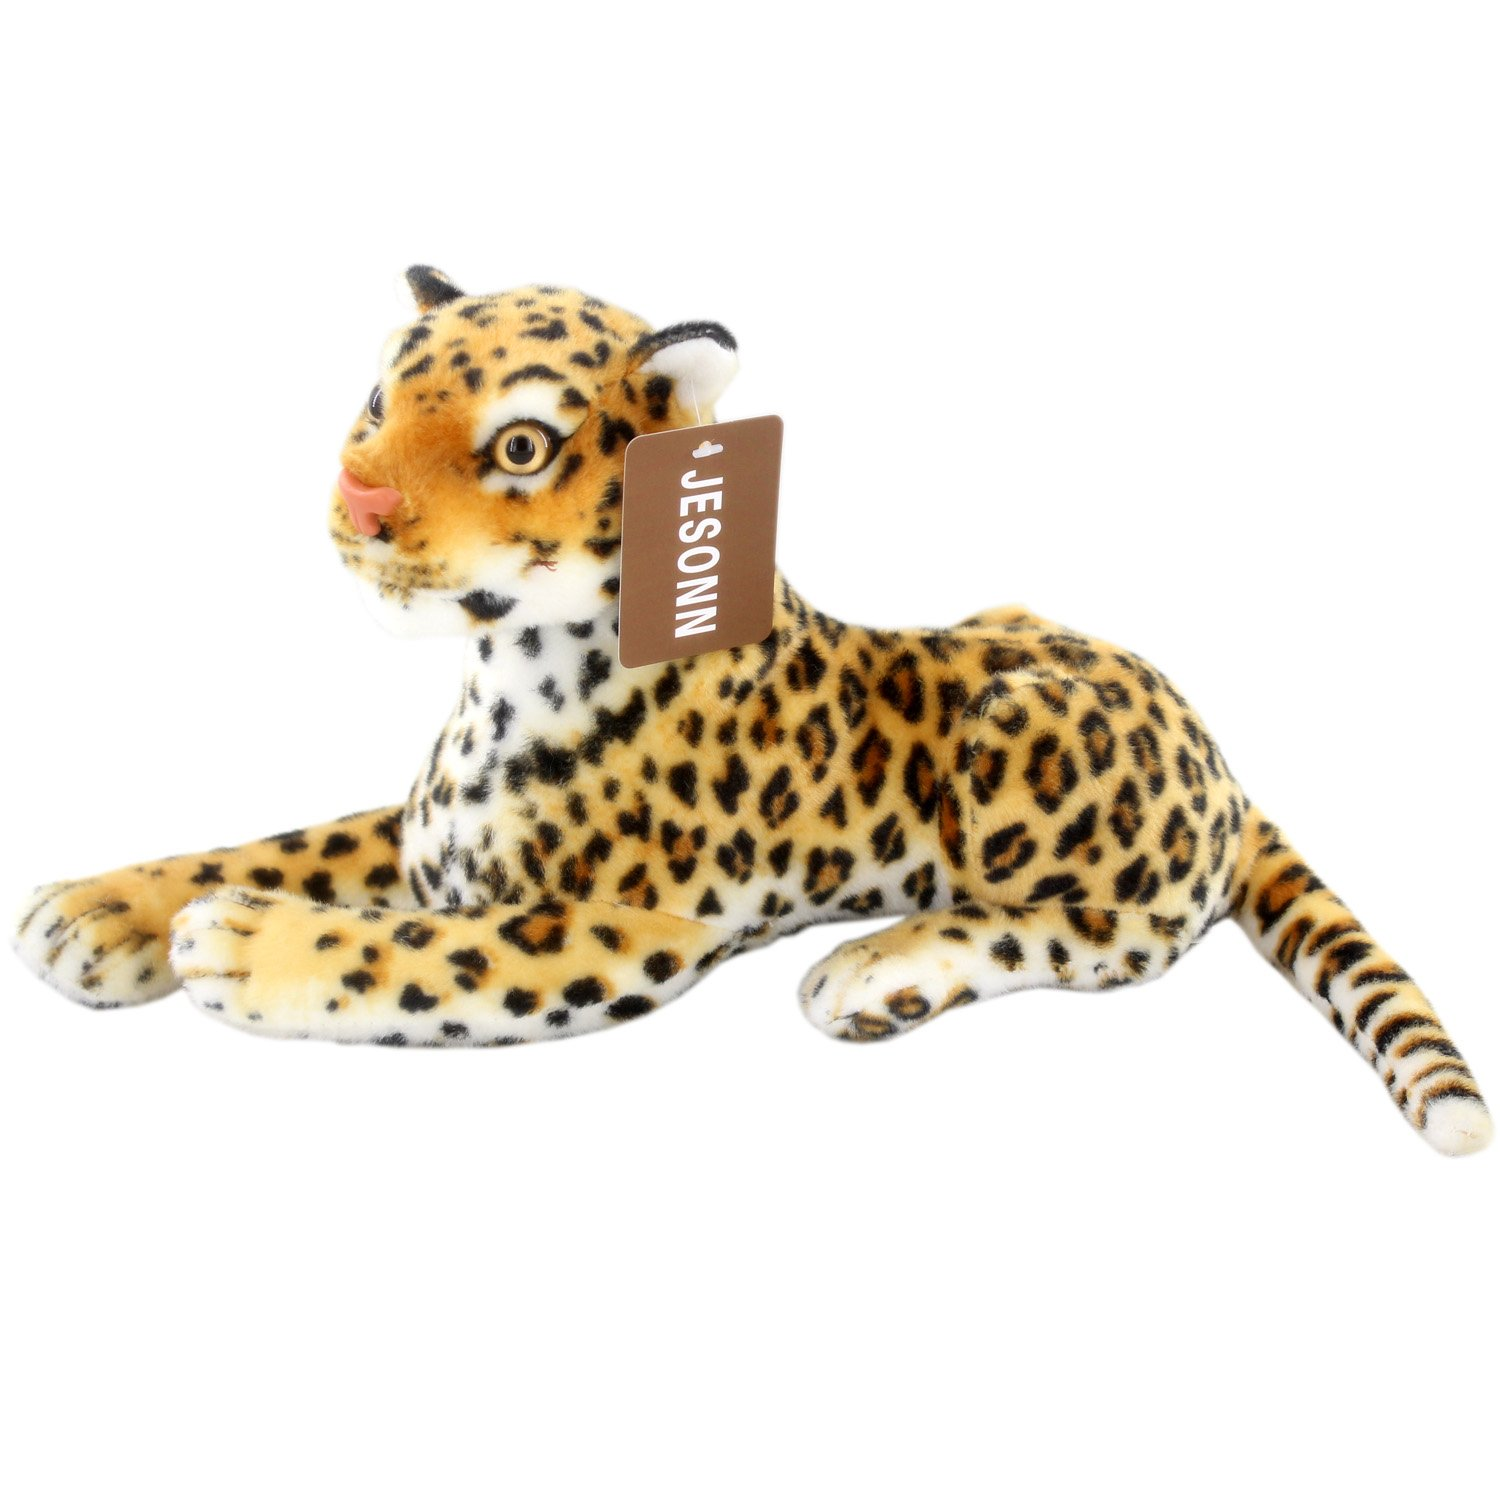 Jesonn Realistic Stuffed Toy Animals Spotted Leopard Calf Plush for Kids' Birthdays Gifts,12 or 30CM,1PC by Jesonn